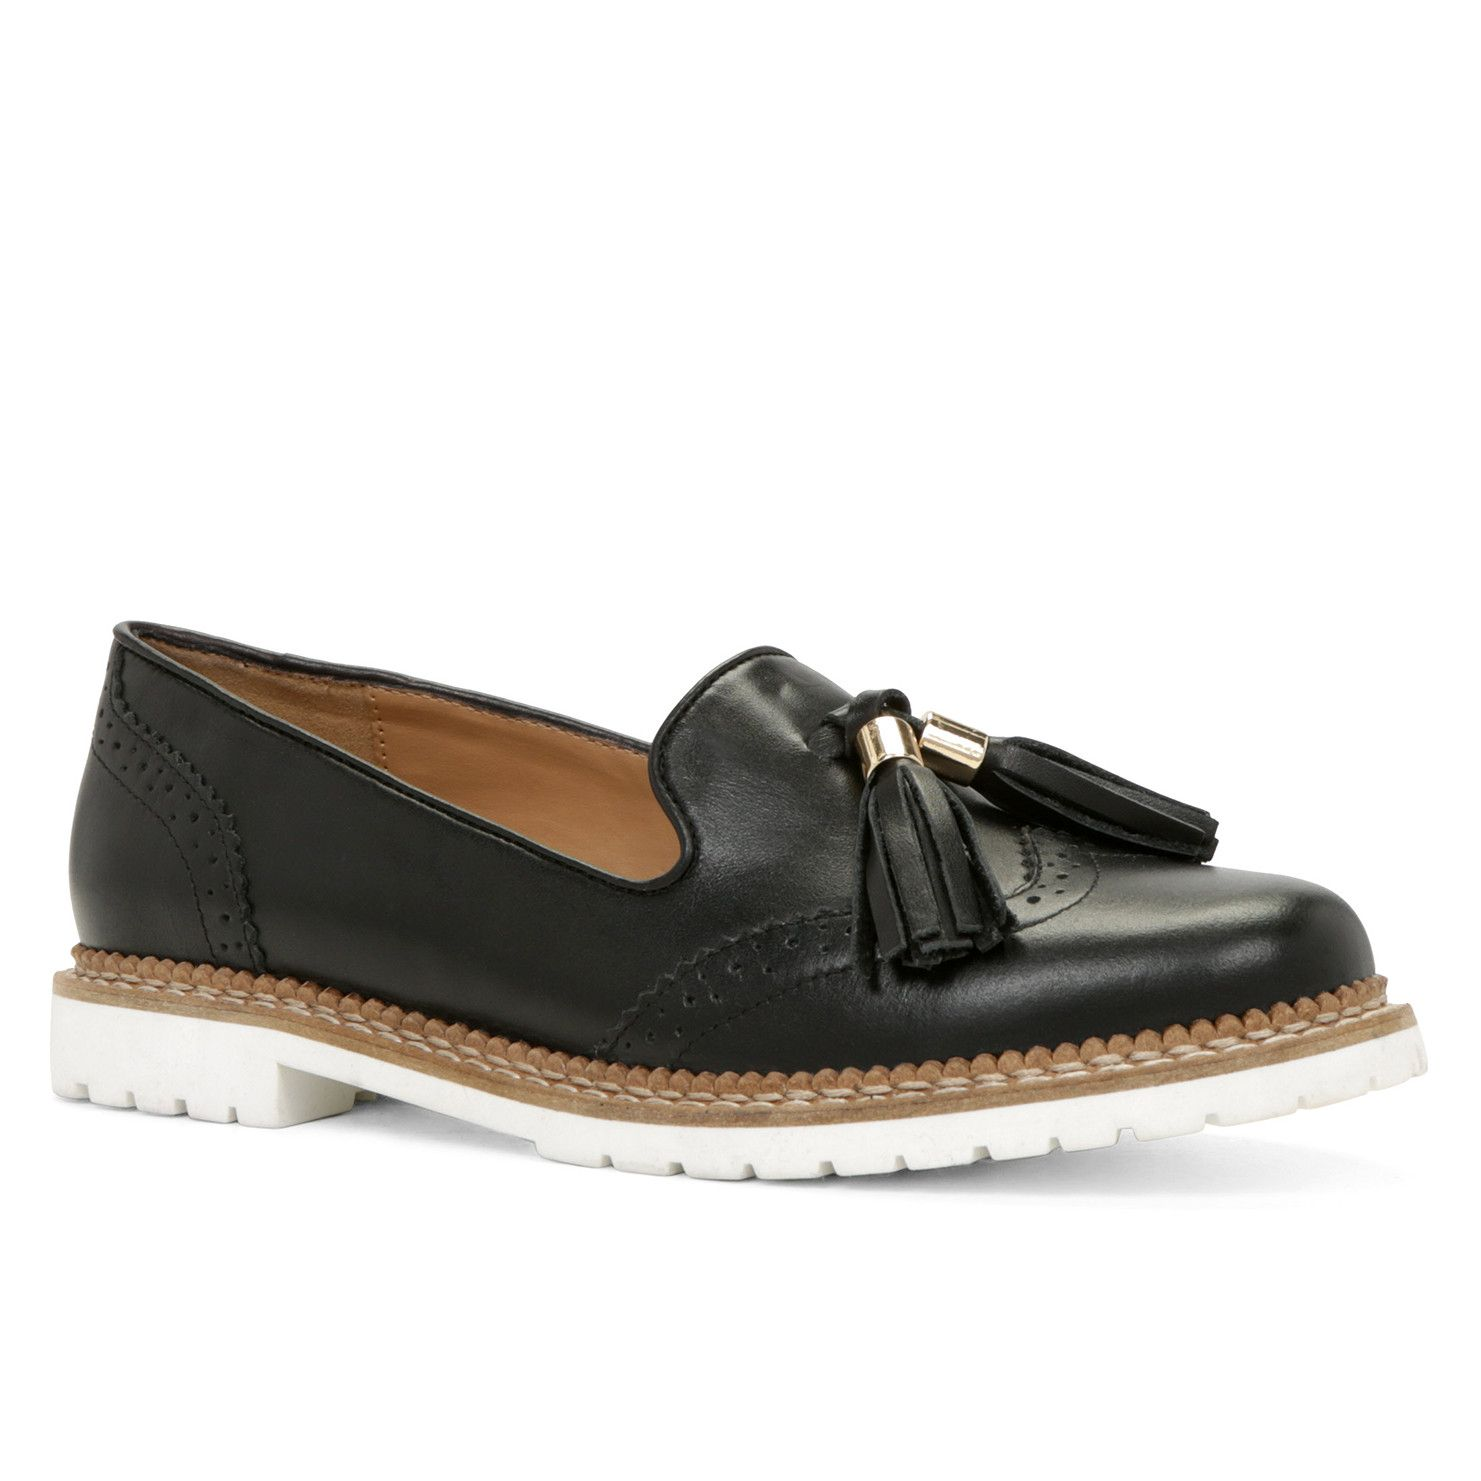 aldo shoes oxford women outfit with loafers